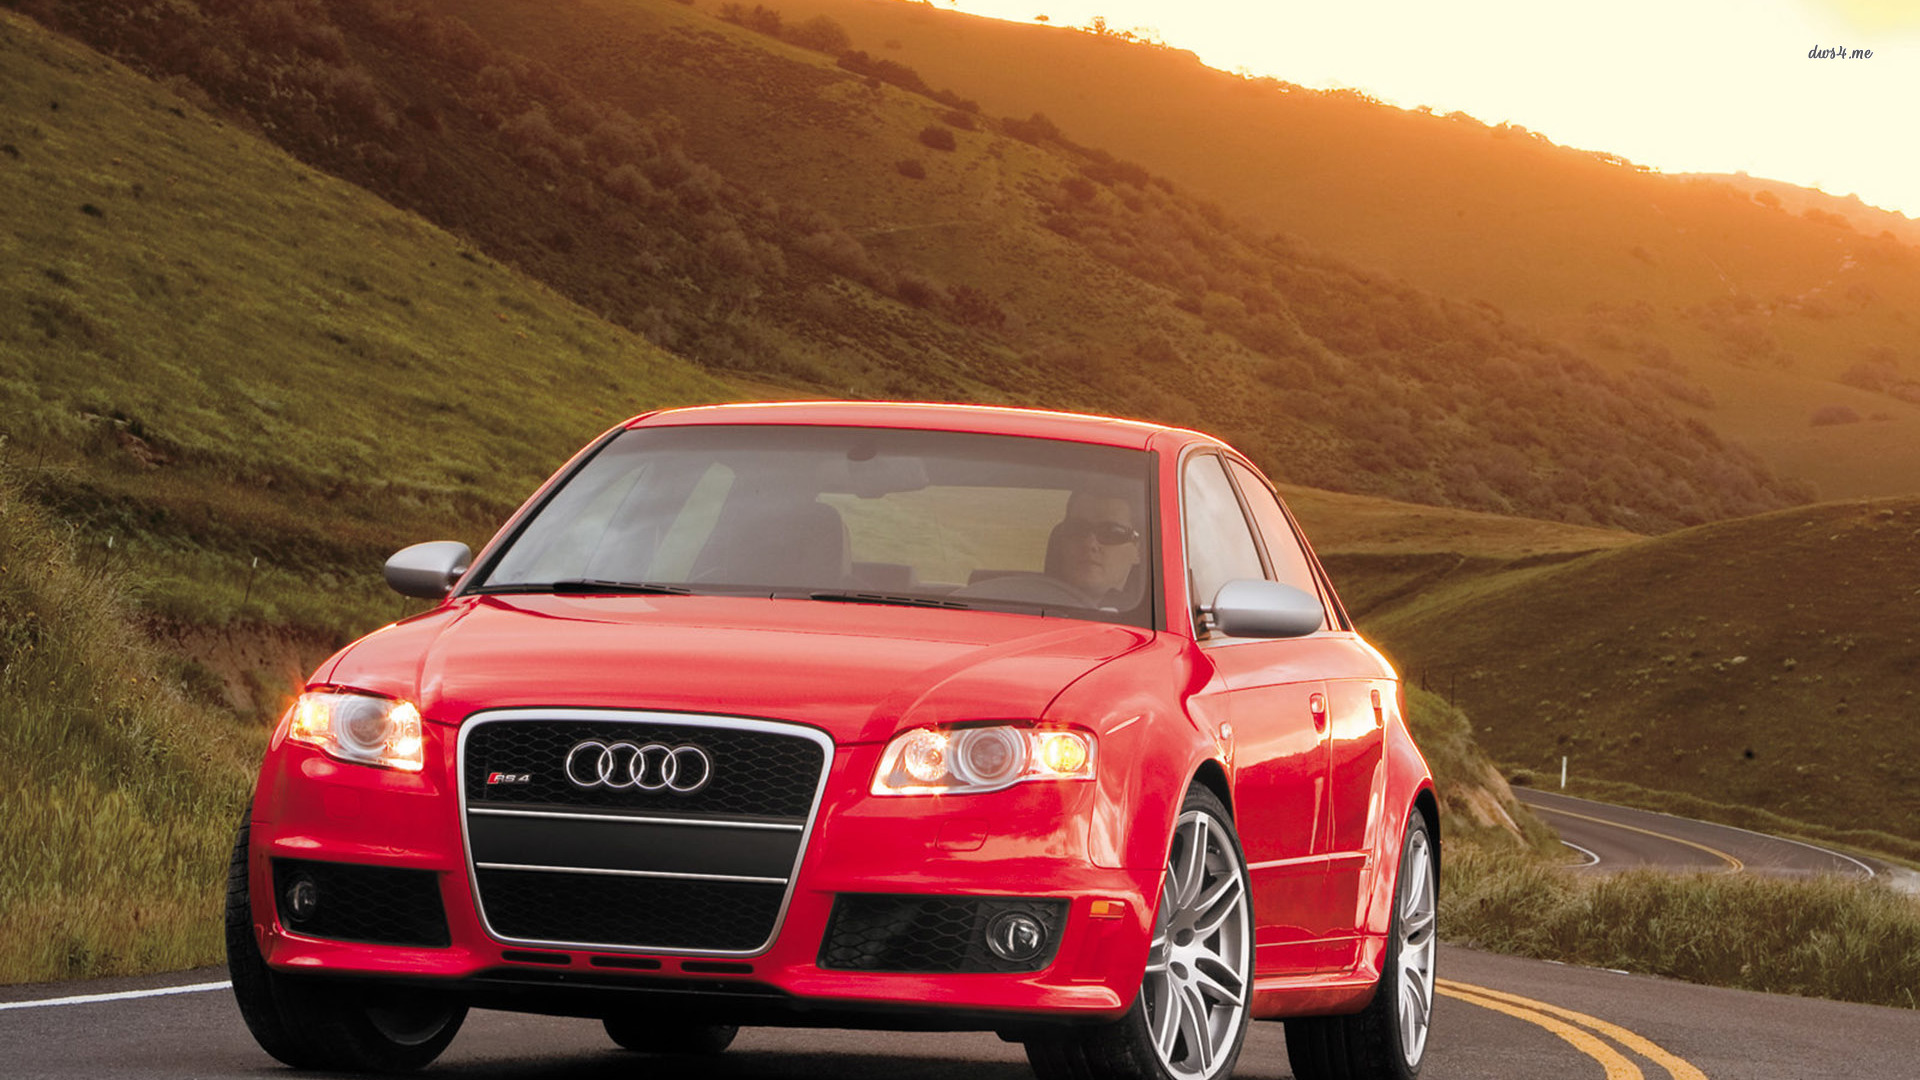 2008 Red Audi Rs4 On The Road Wallpaper Nature Images Odi